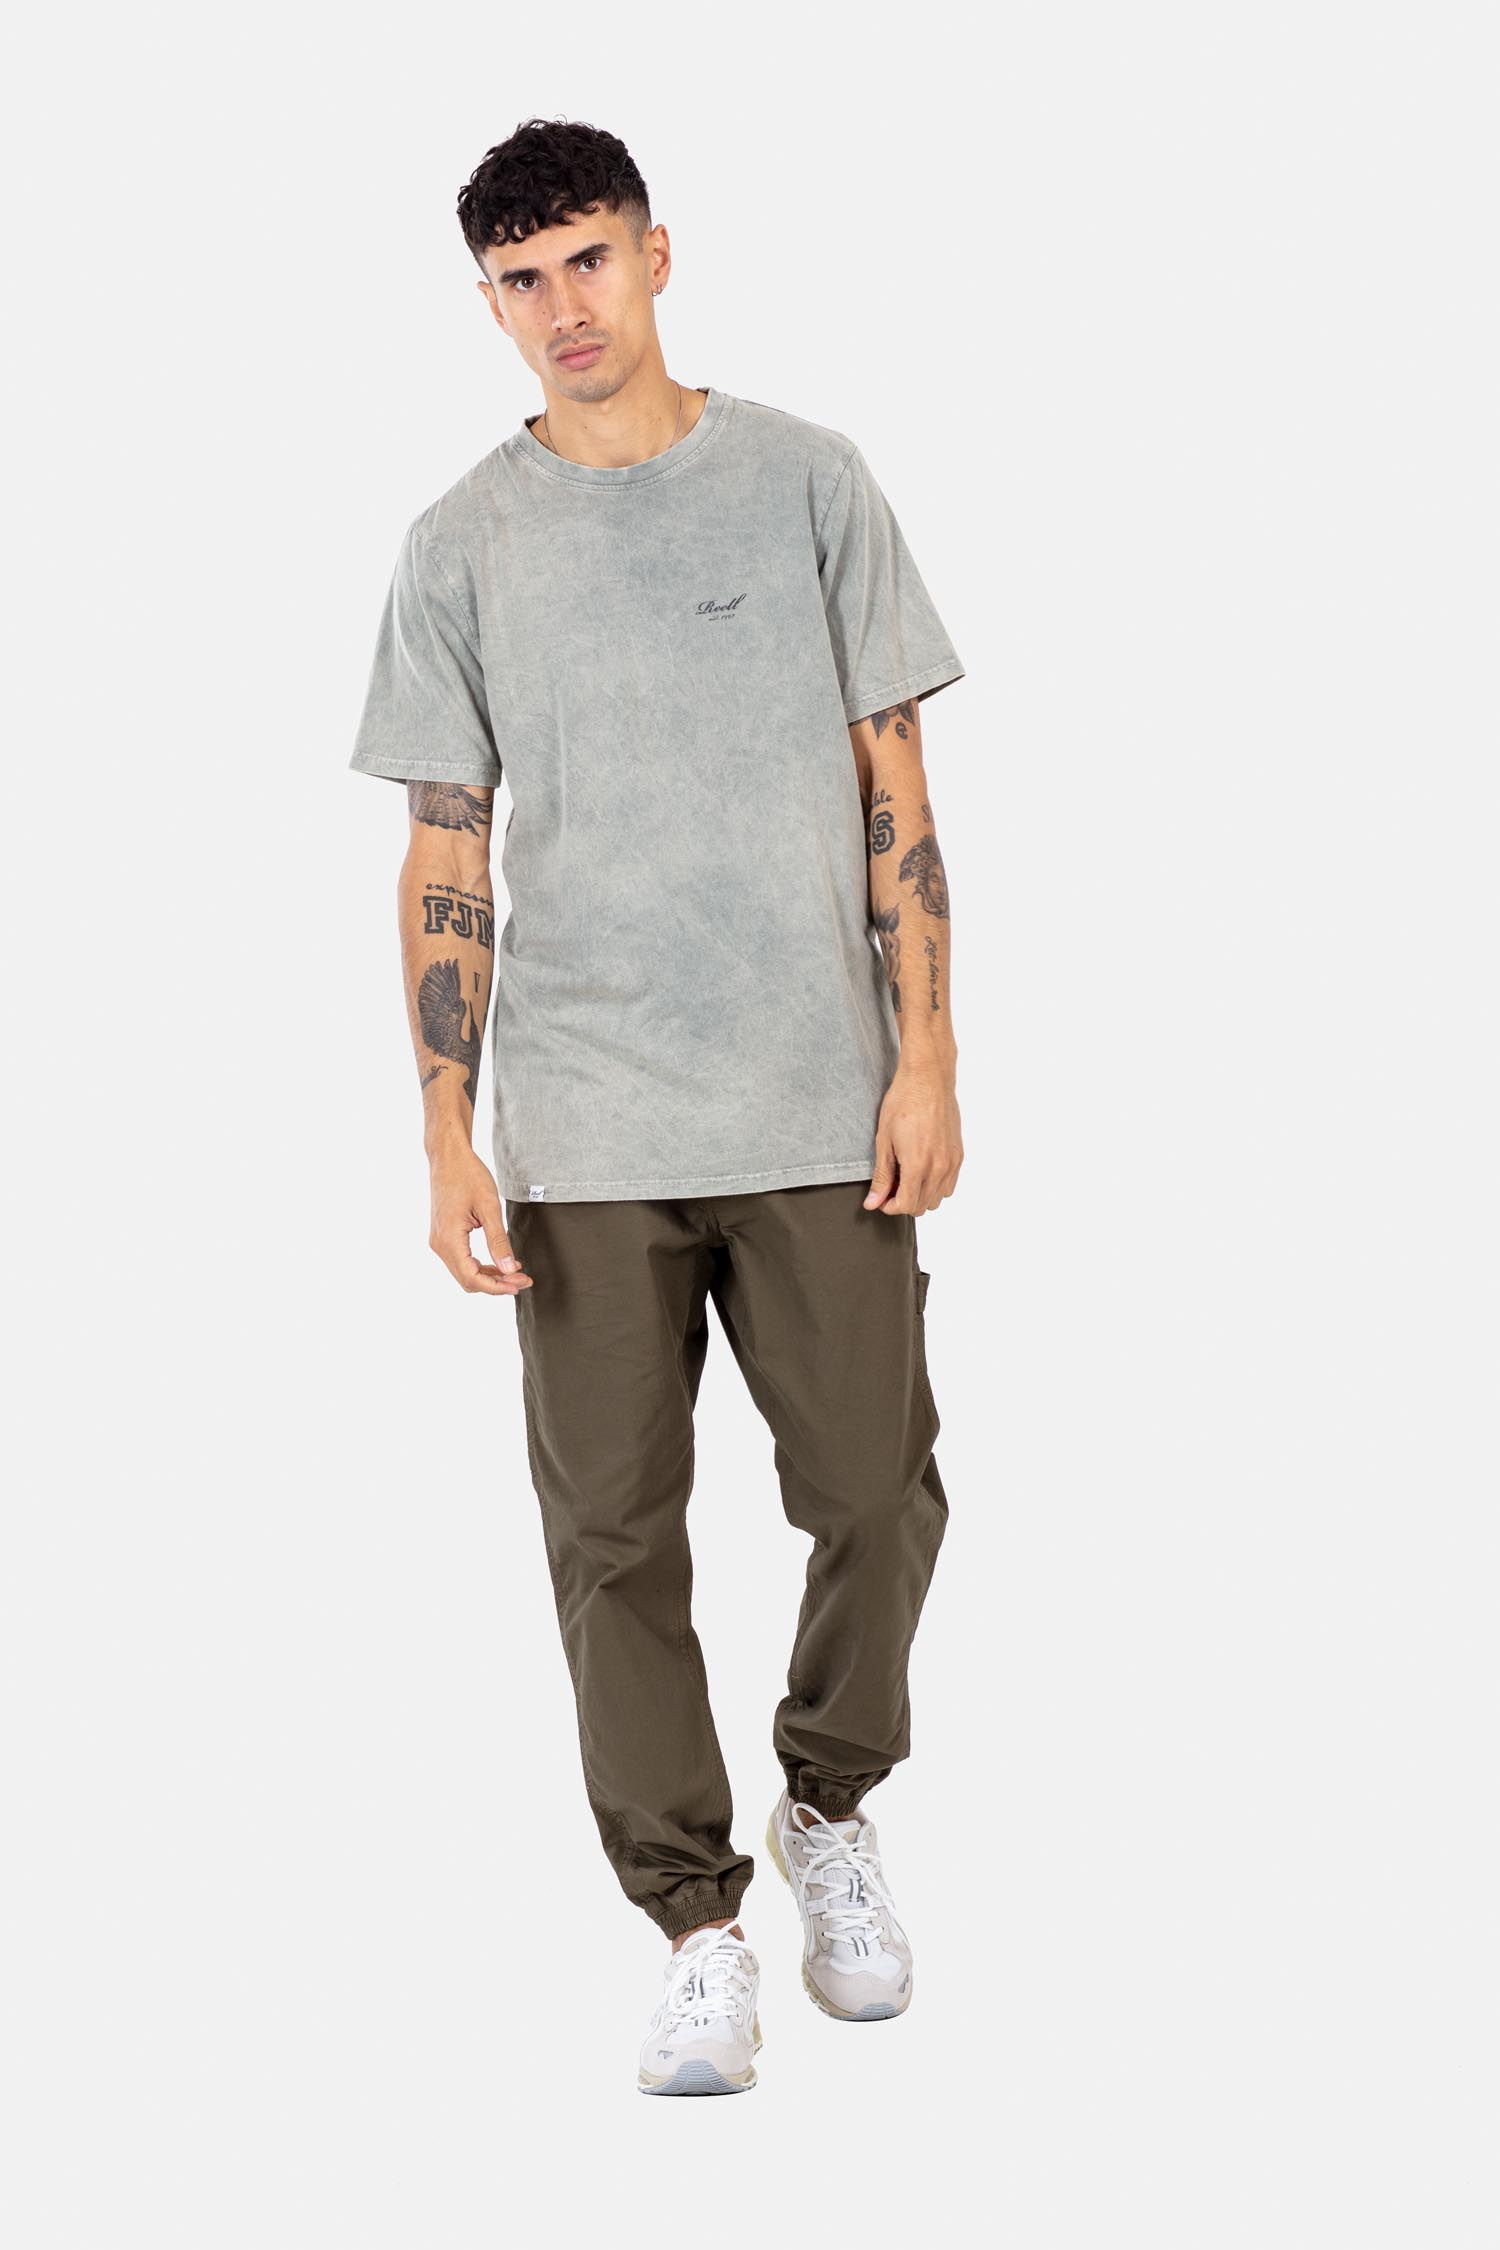 REELL-REFLEX-WORKER-LC-Hose-clay-olive9